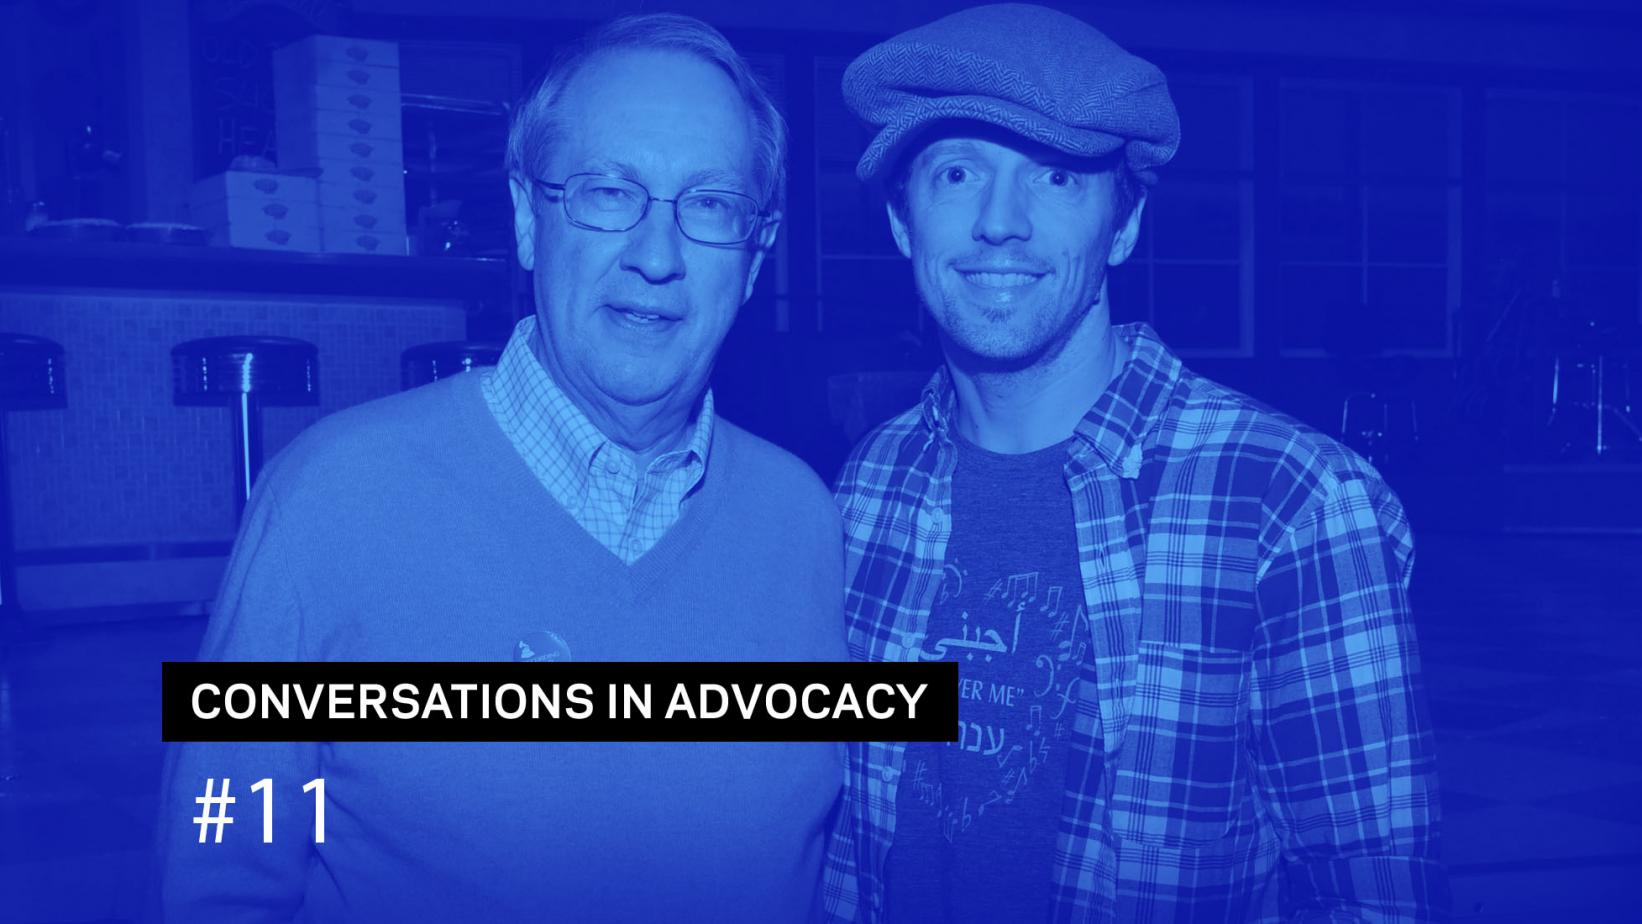 Rep. Bob Goodlatte and Jason Mraz